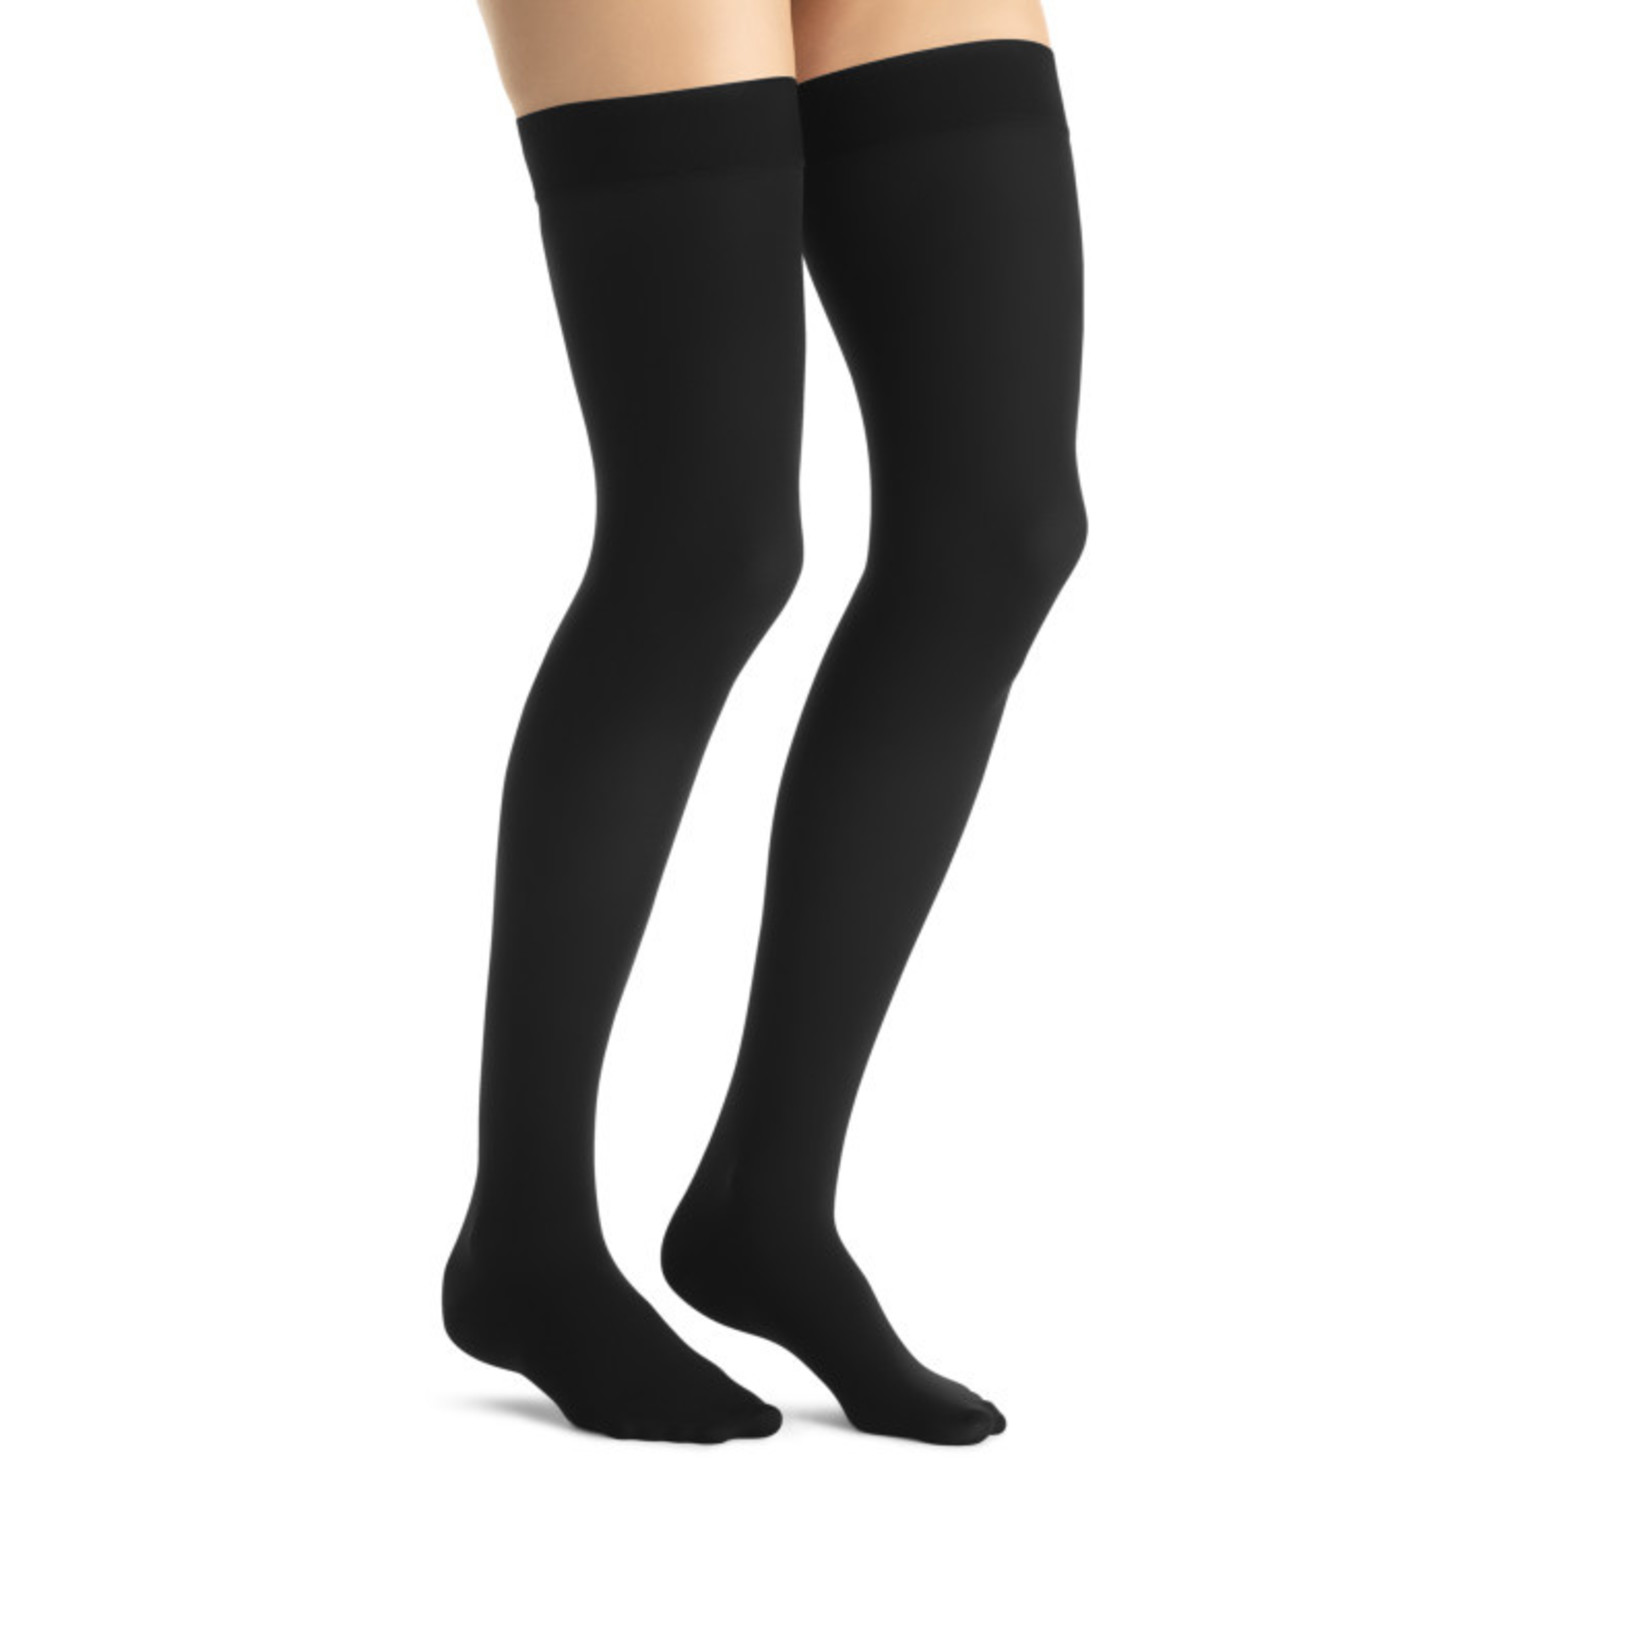 JOBST JOBST OPAQUE THIGH 15-20 CLOSED TOE DOT CLASSIC BLACK MD